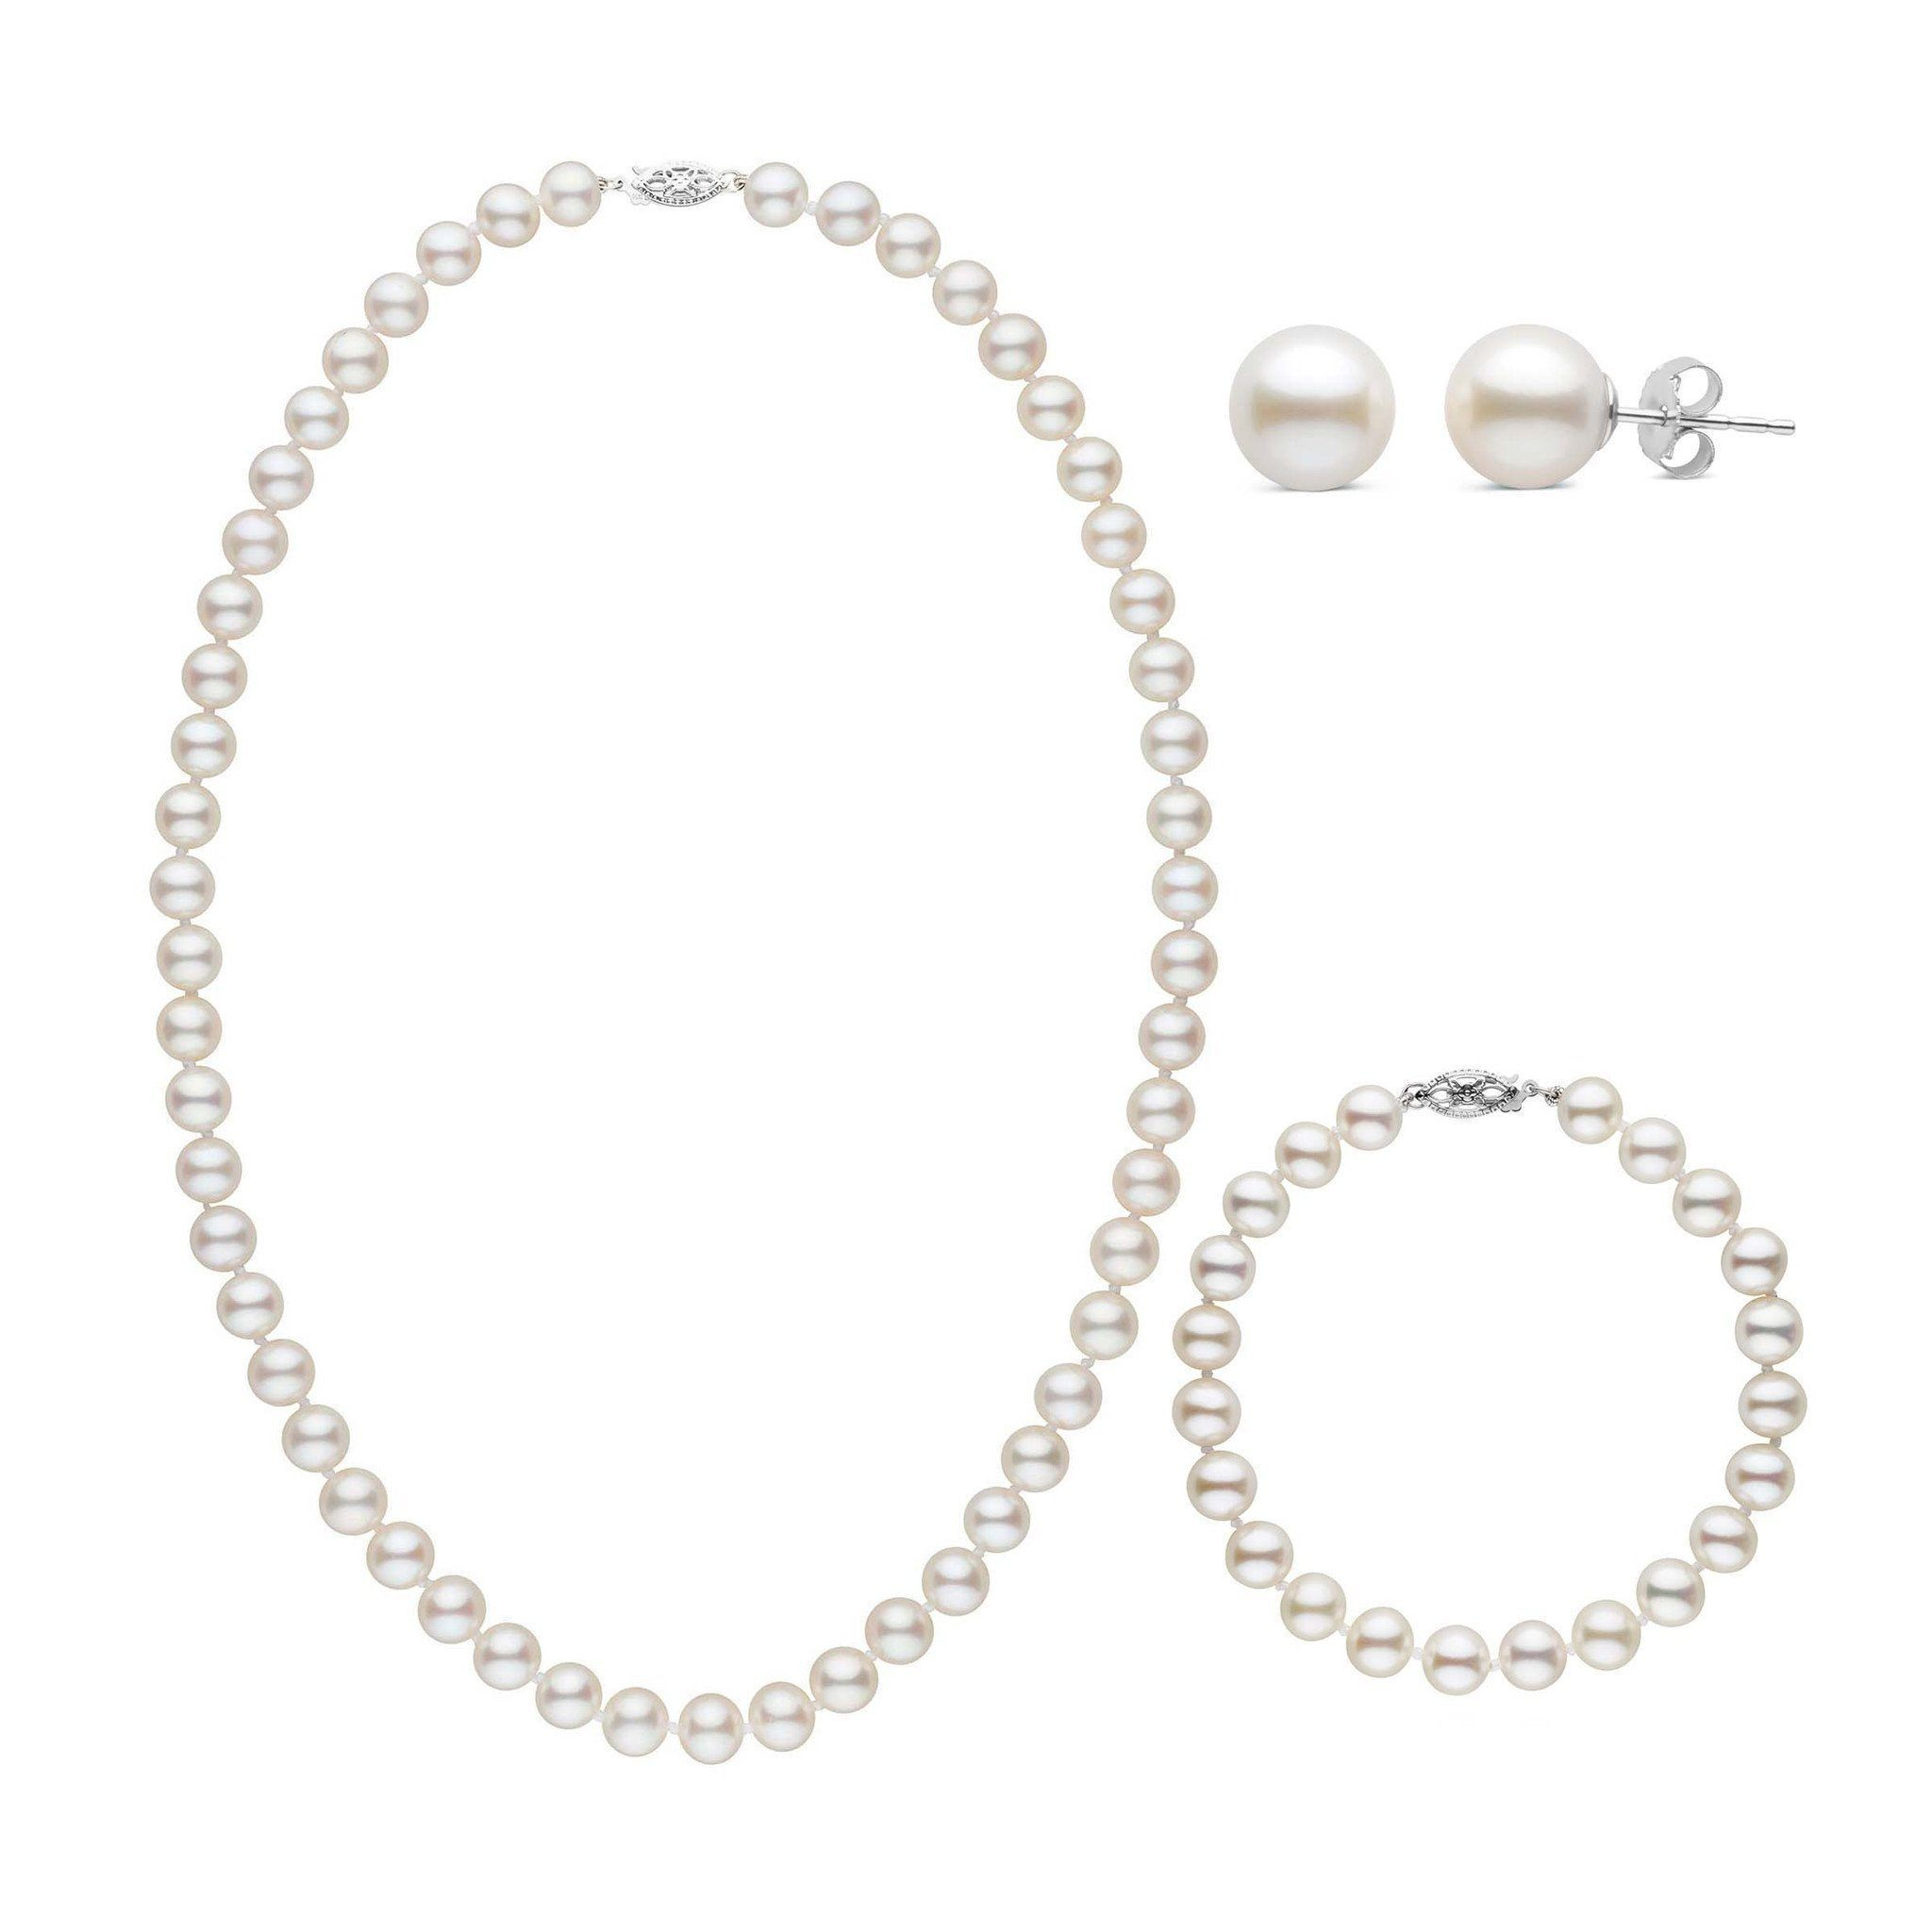 18 Inch 3 Piece Set of 7.5-8.0 mm AAA White Freshwater Pearls